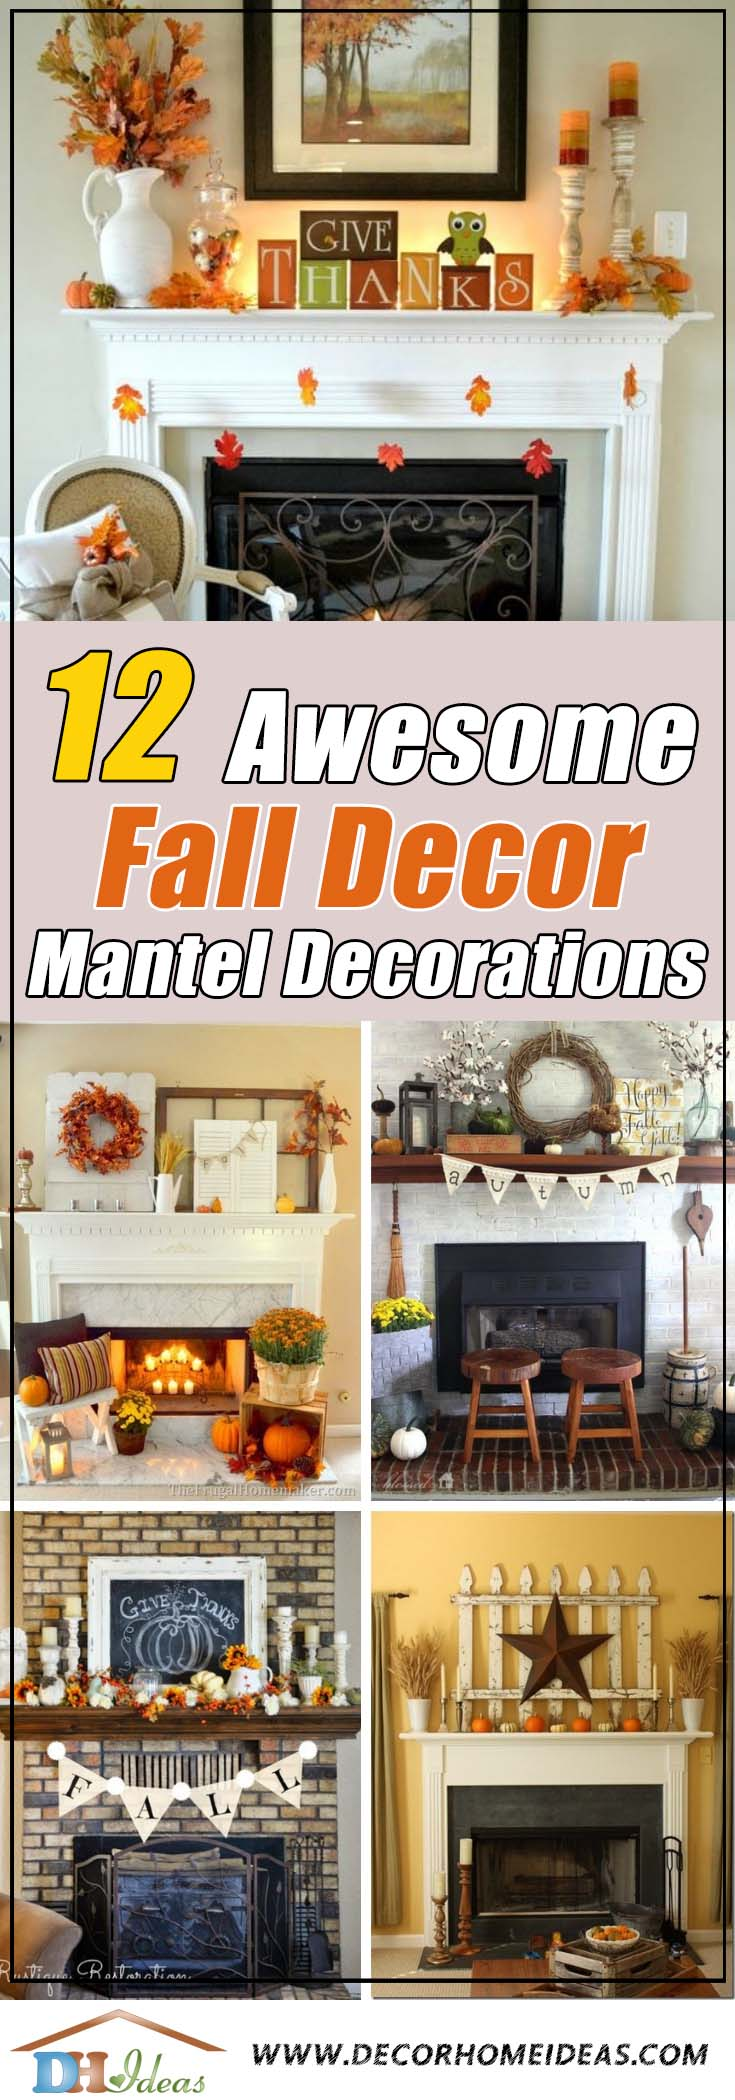 12 Autumn Decor Mantle Ideas That Will Inspire You | Decorate your fireplace mantel with some fall inspired accessories and decors #falldecor #mantel #manteldecor #homedecor #decoratingideas #decorhomeideas